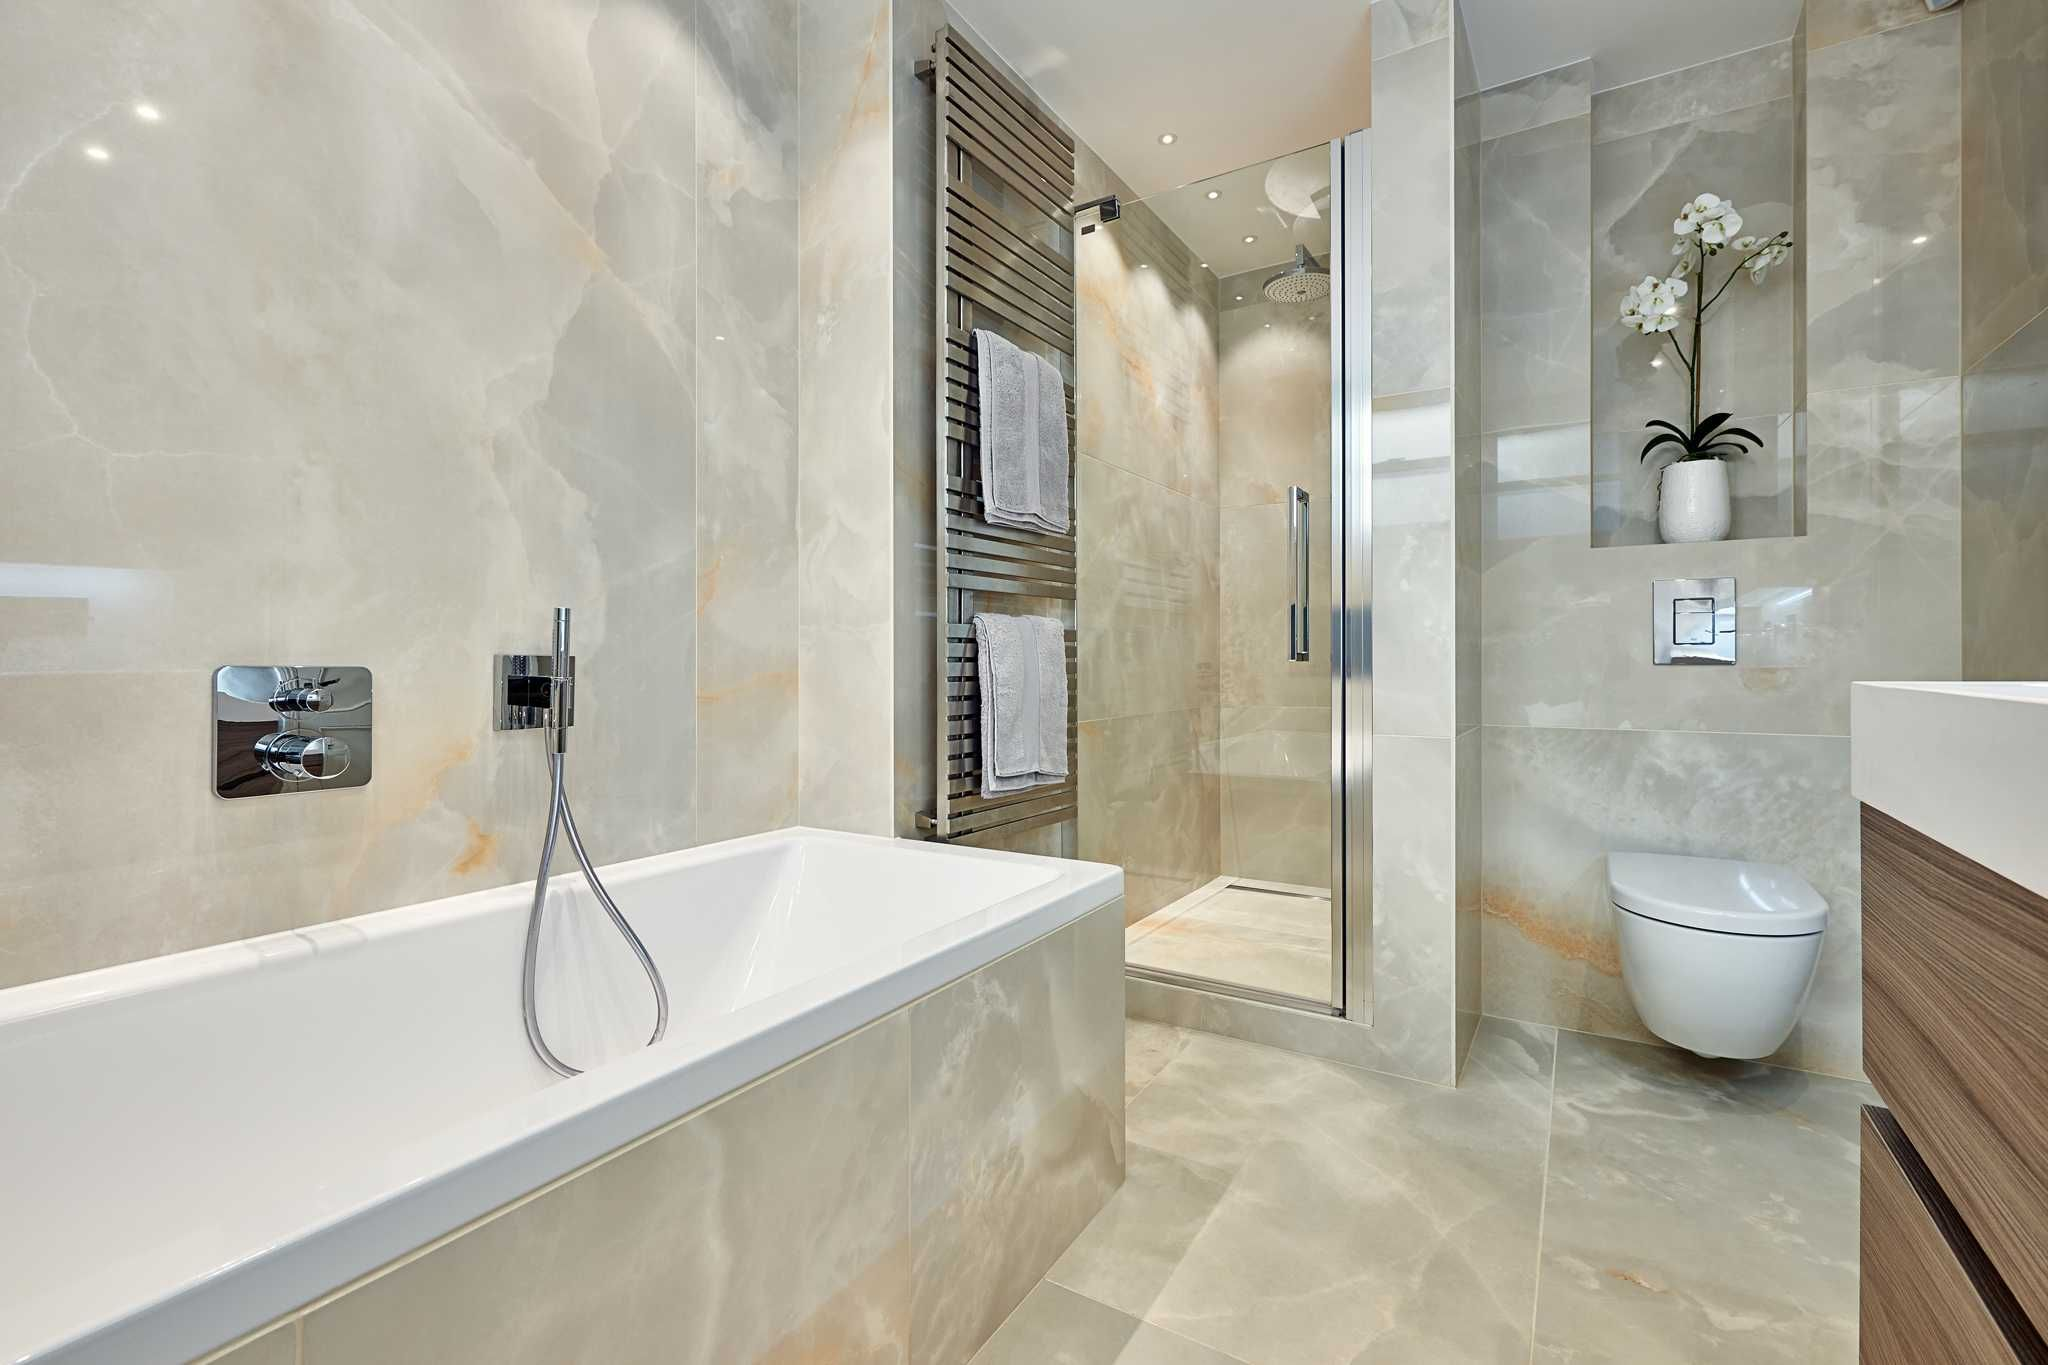 Onyx Bathroom Shower Surrounds Menards With Images Onyx Tile